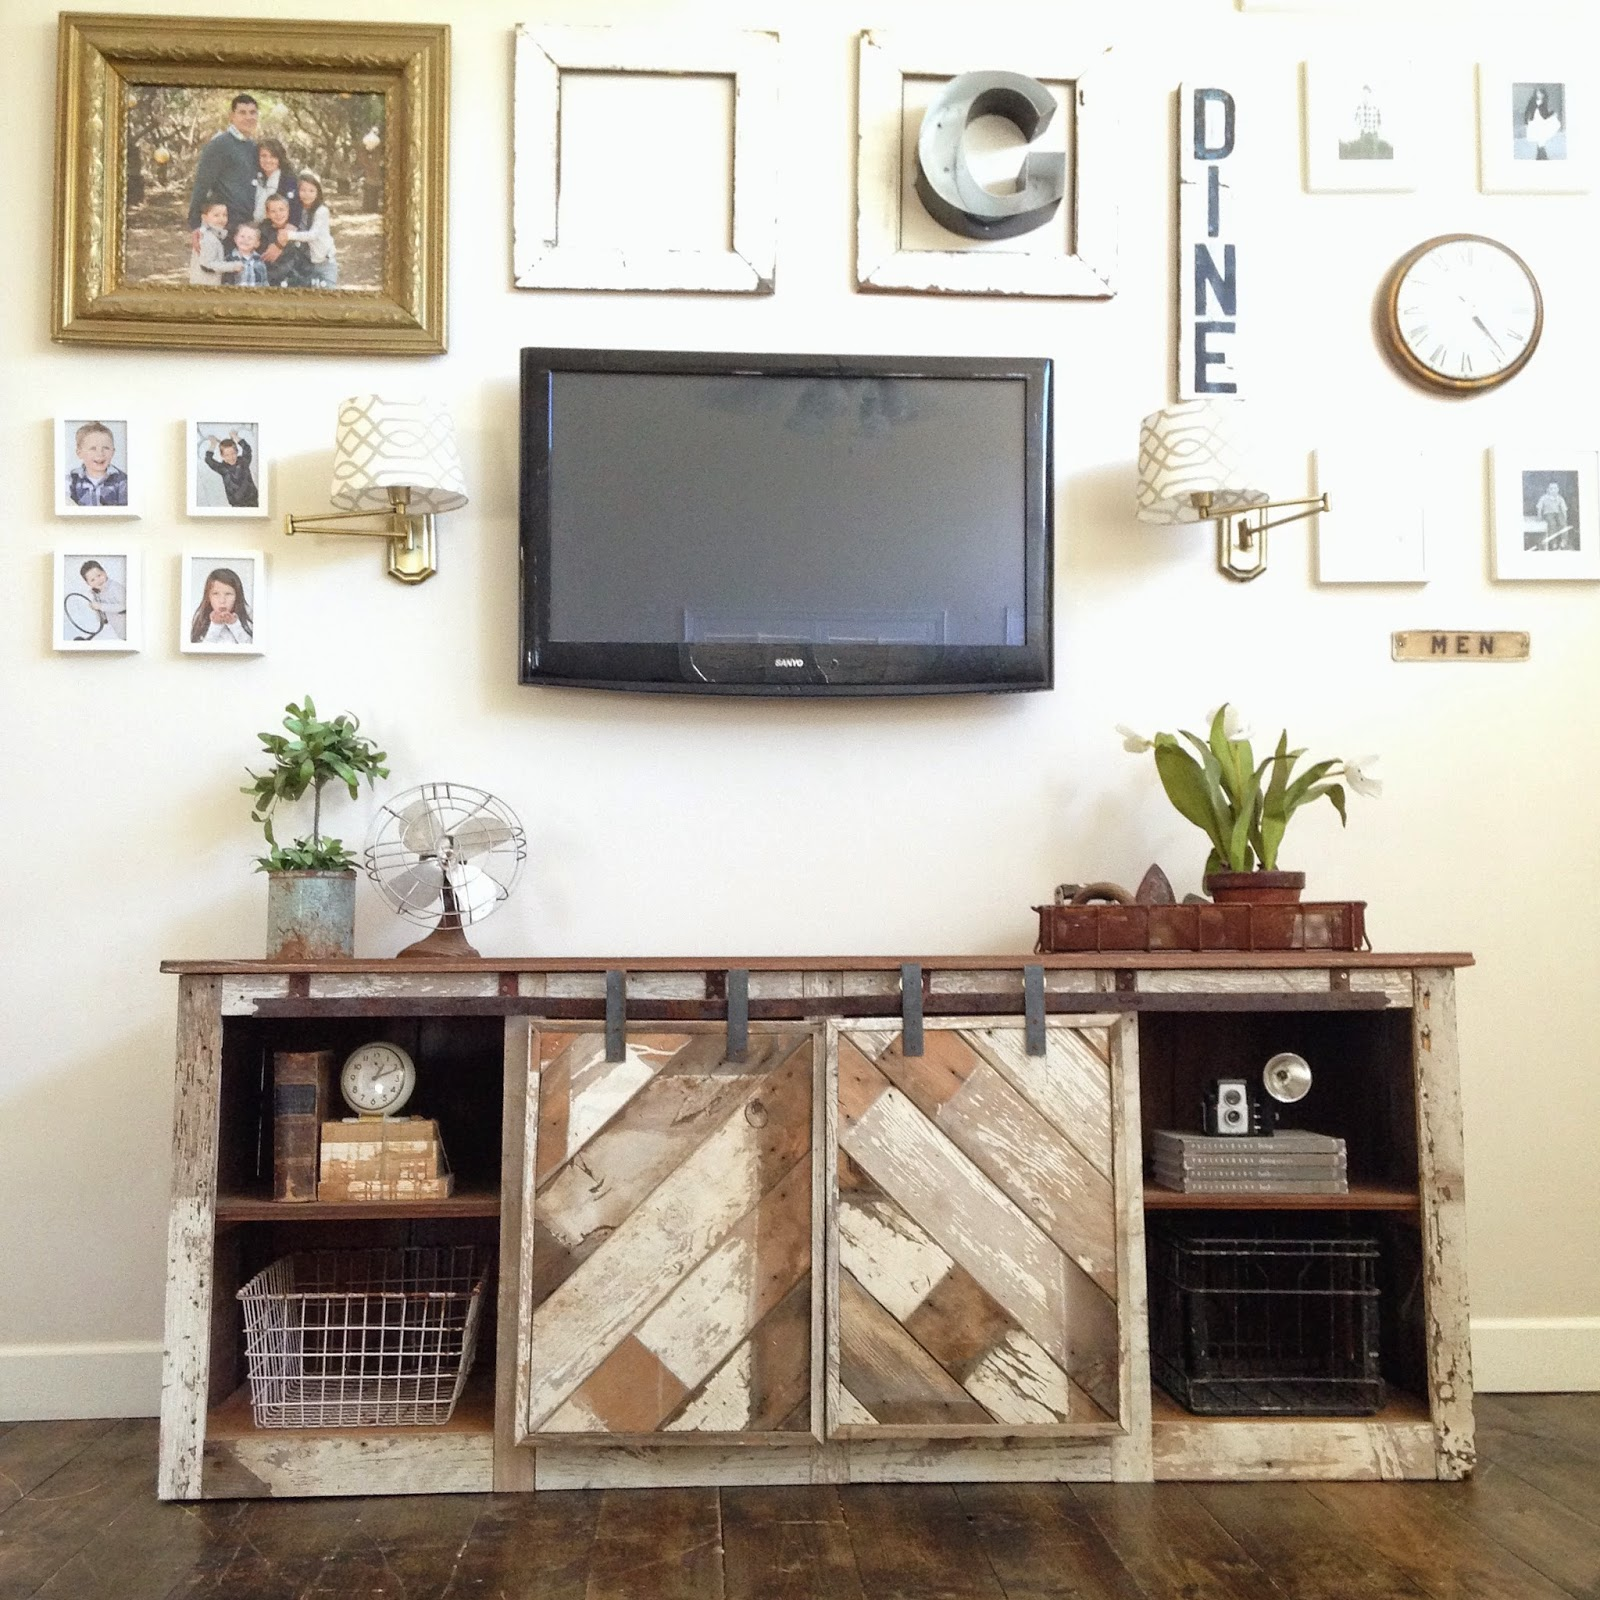 How to make a sofa table out of floor boards - Reclaimed Wood Barn Door Console Beautiful Distressed Chippy Paint